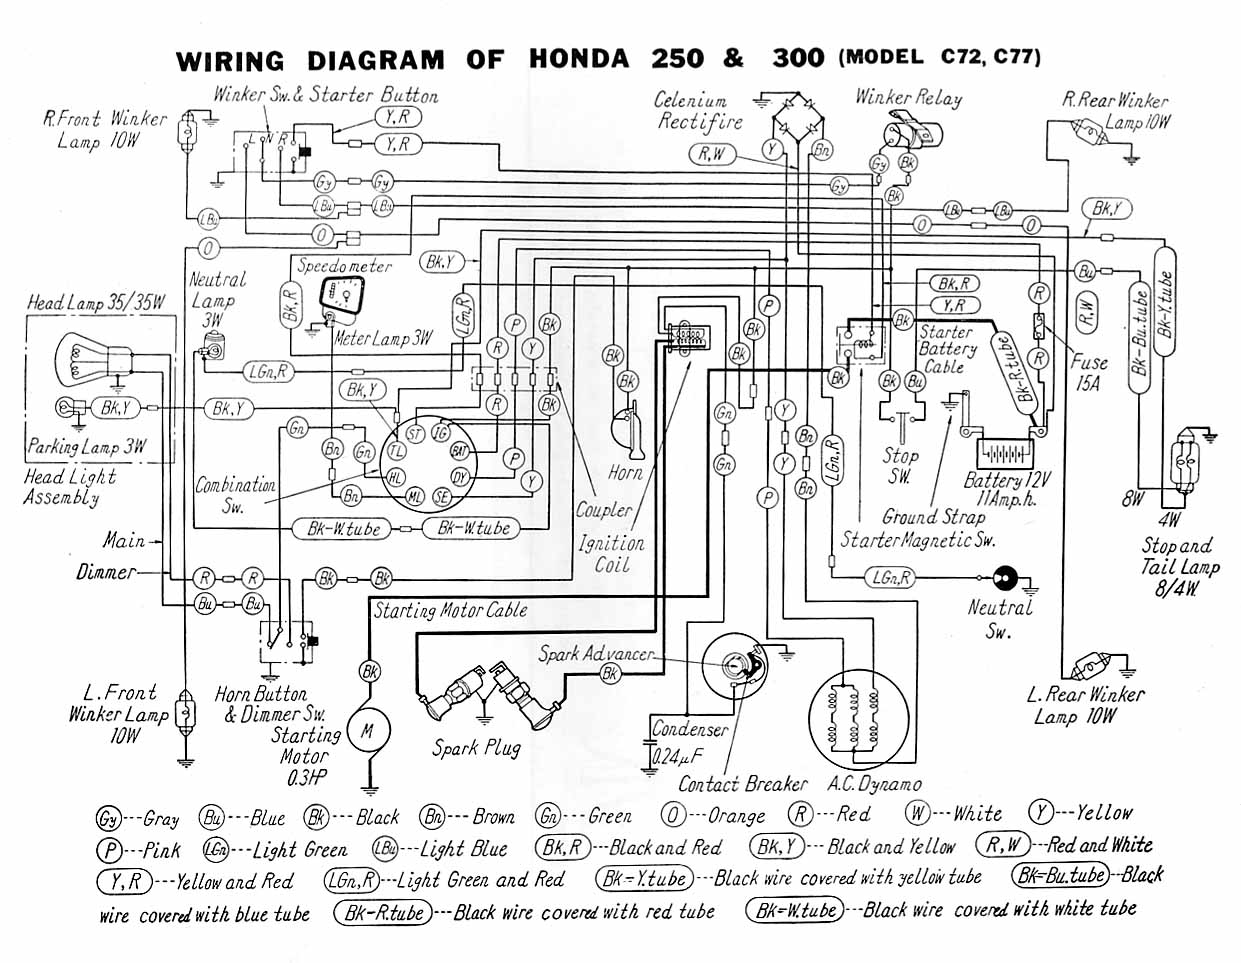 Wiring Diagrams I Need A Diagram C77